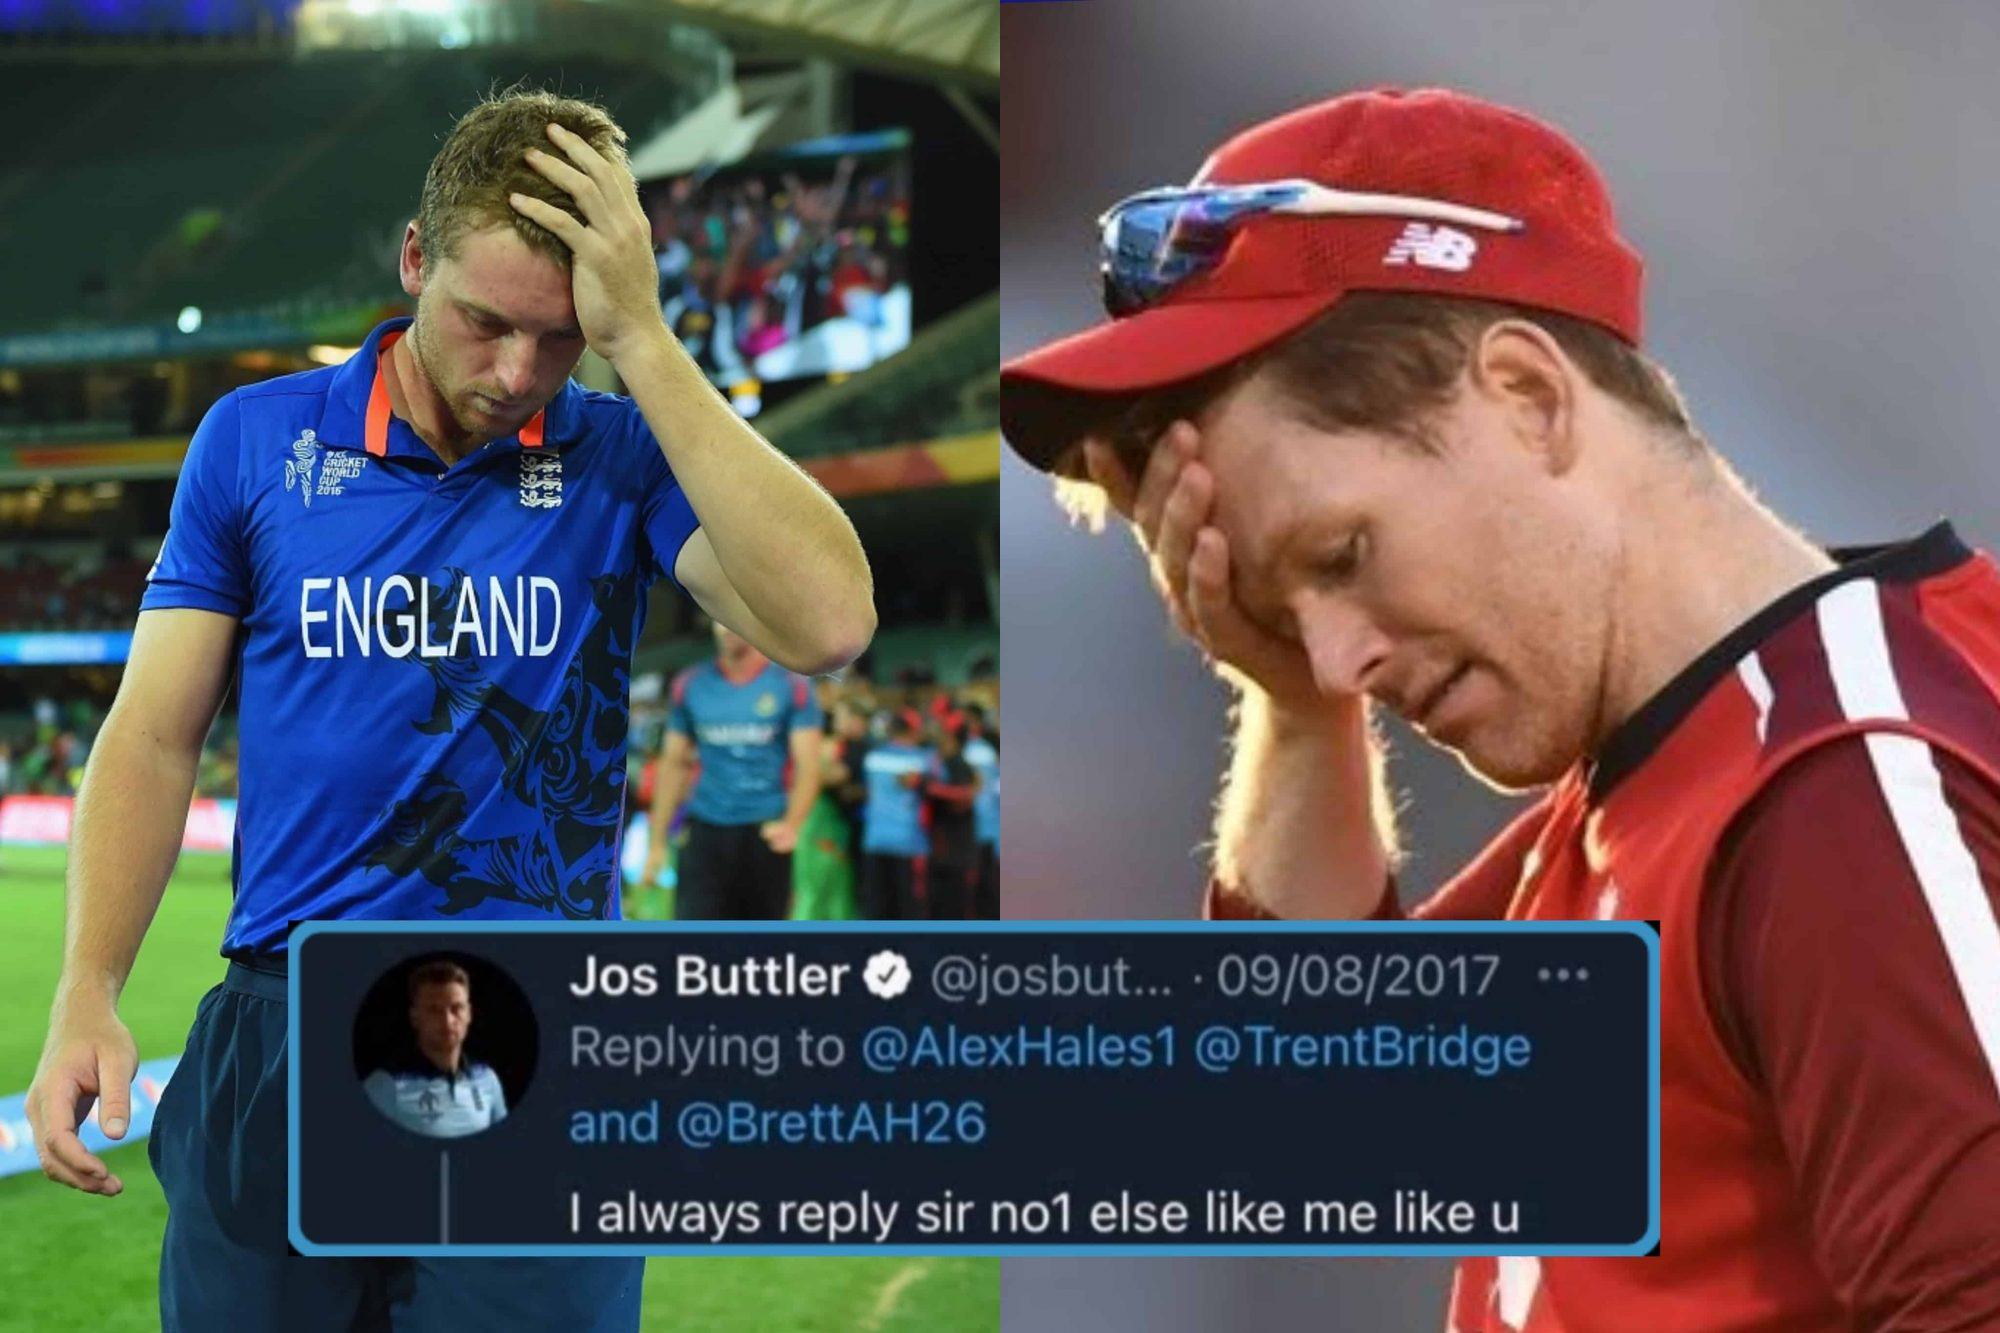 ECB Starts Investigating Morgan And Buttler's Historic Tweets Mocking Indian English - Report